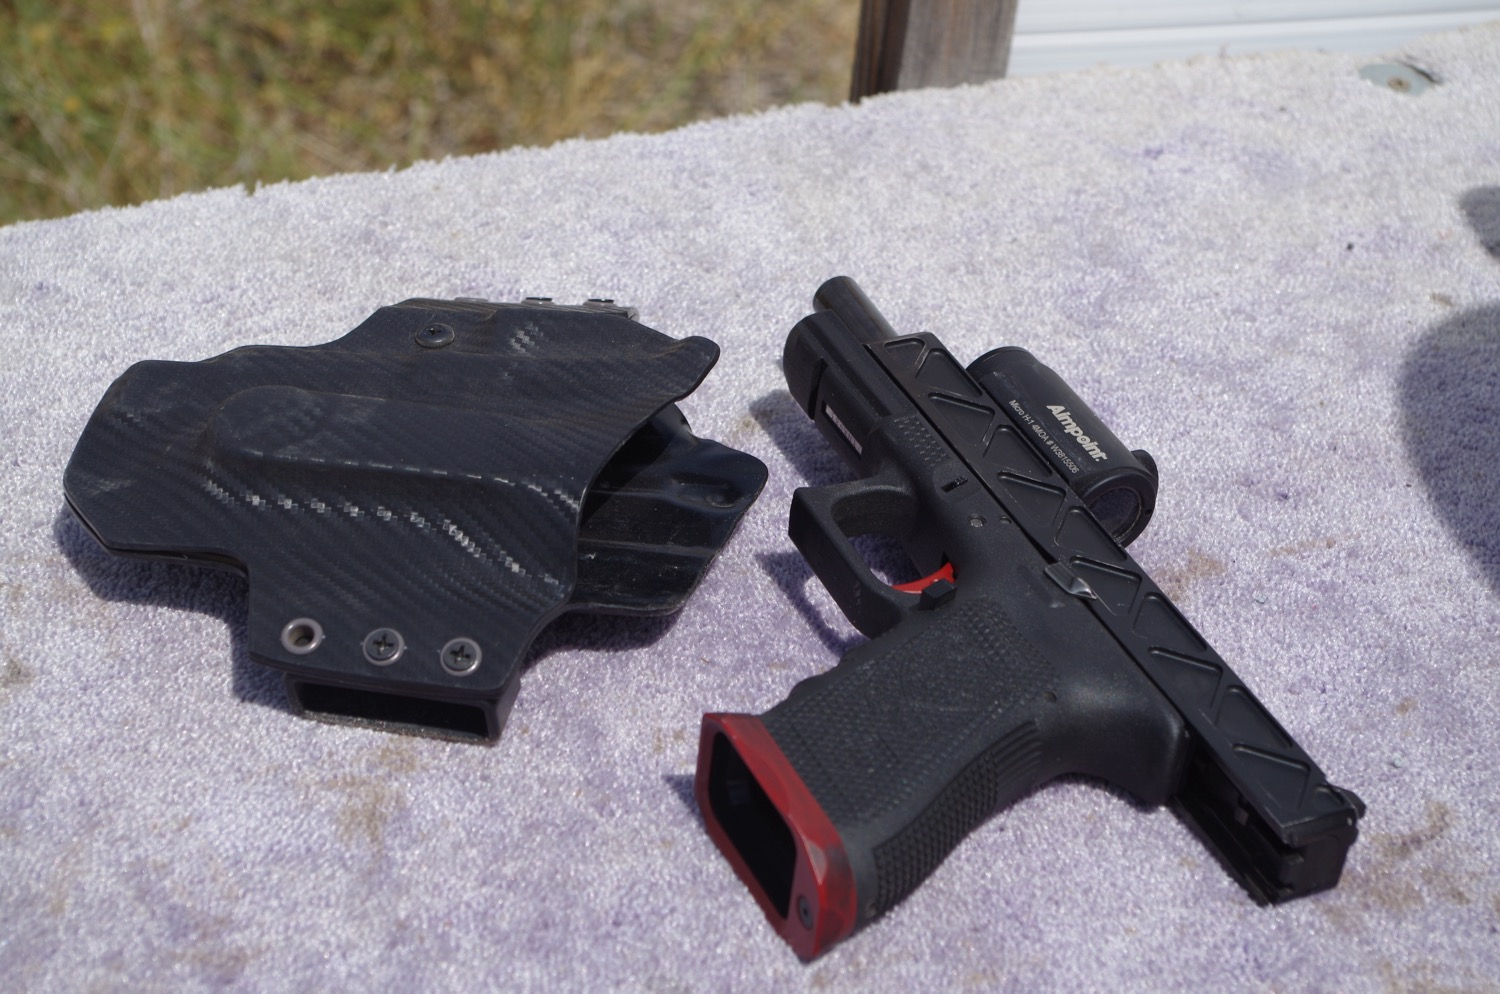 Holsters custom made just before the match.